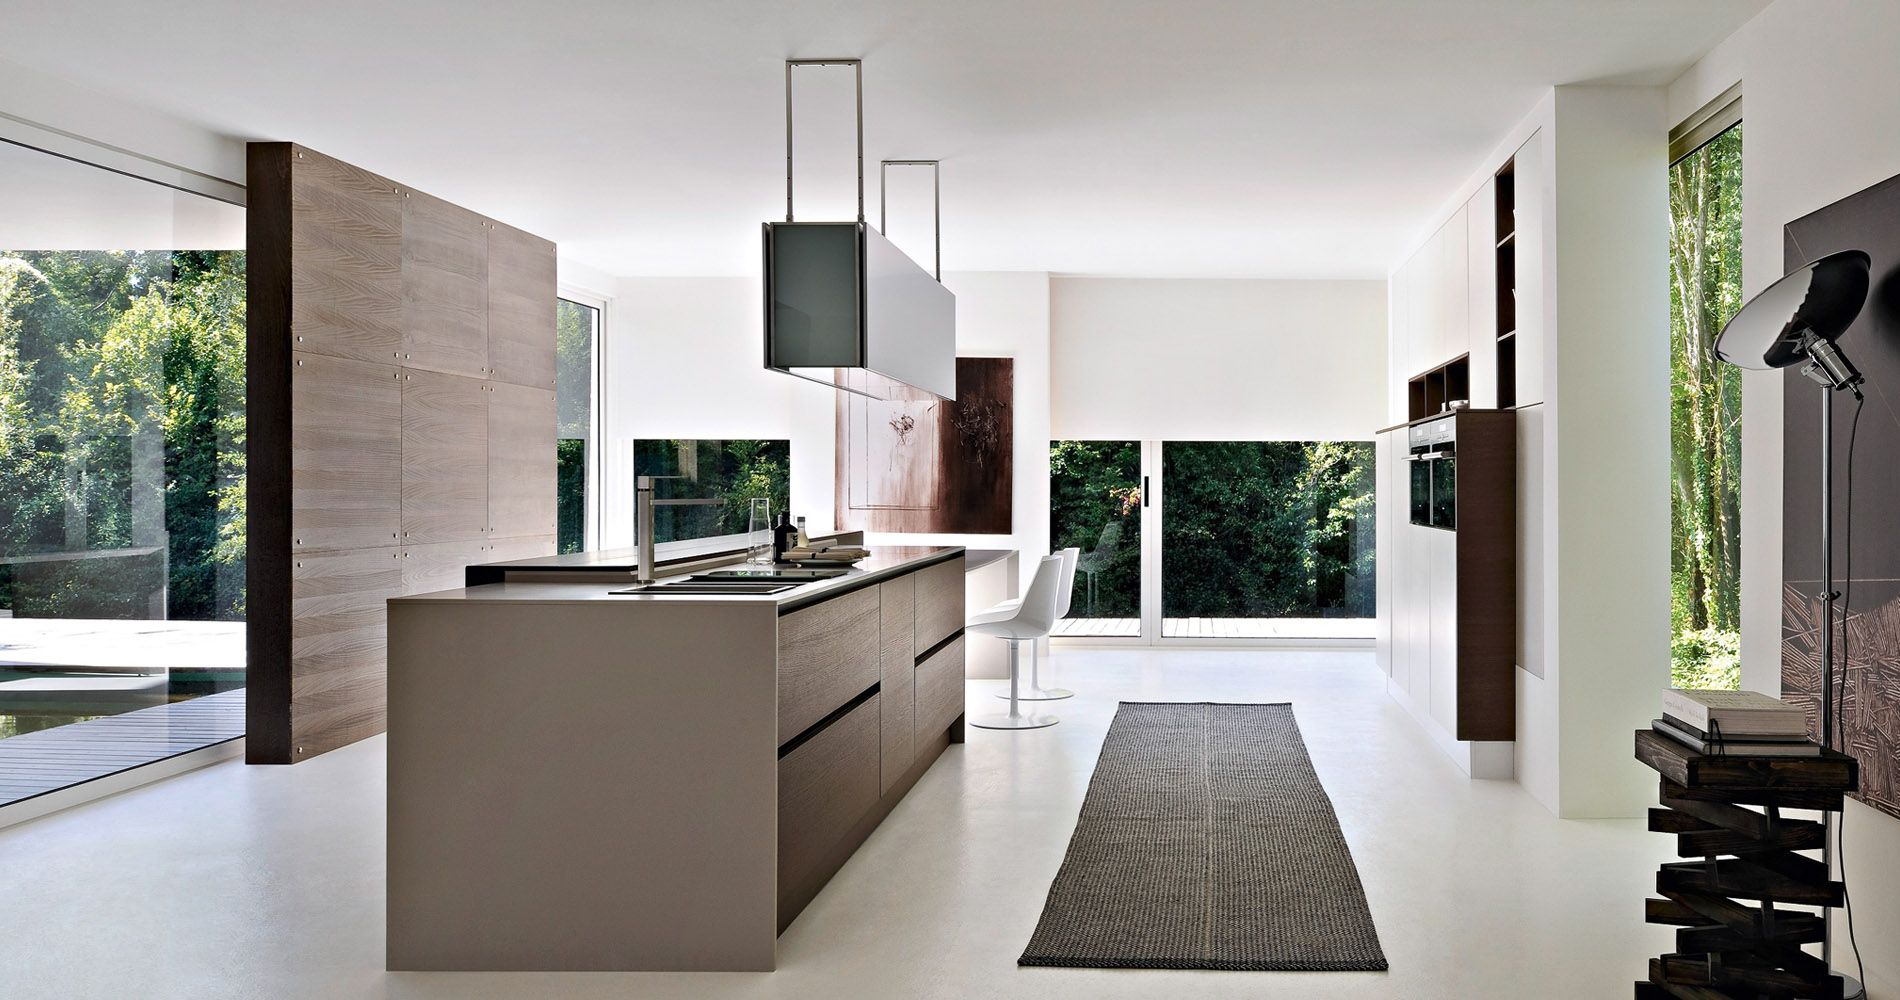 Kitchen Cabinets European Design pedini kitchen design: italian, german & european modern kitchens